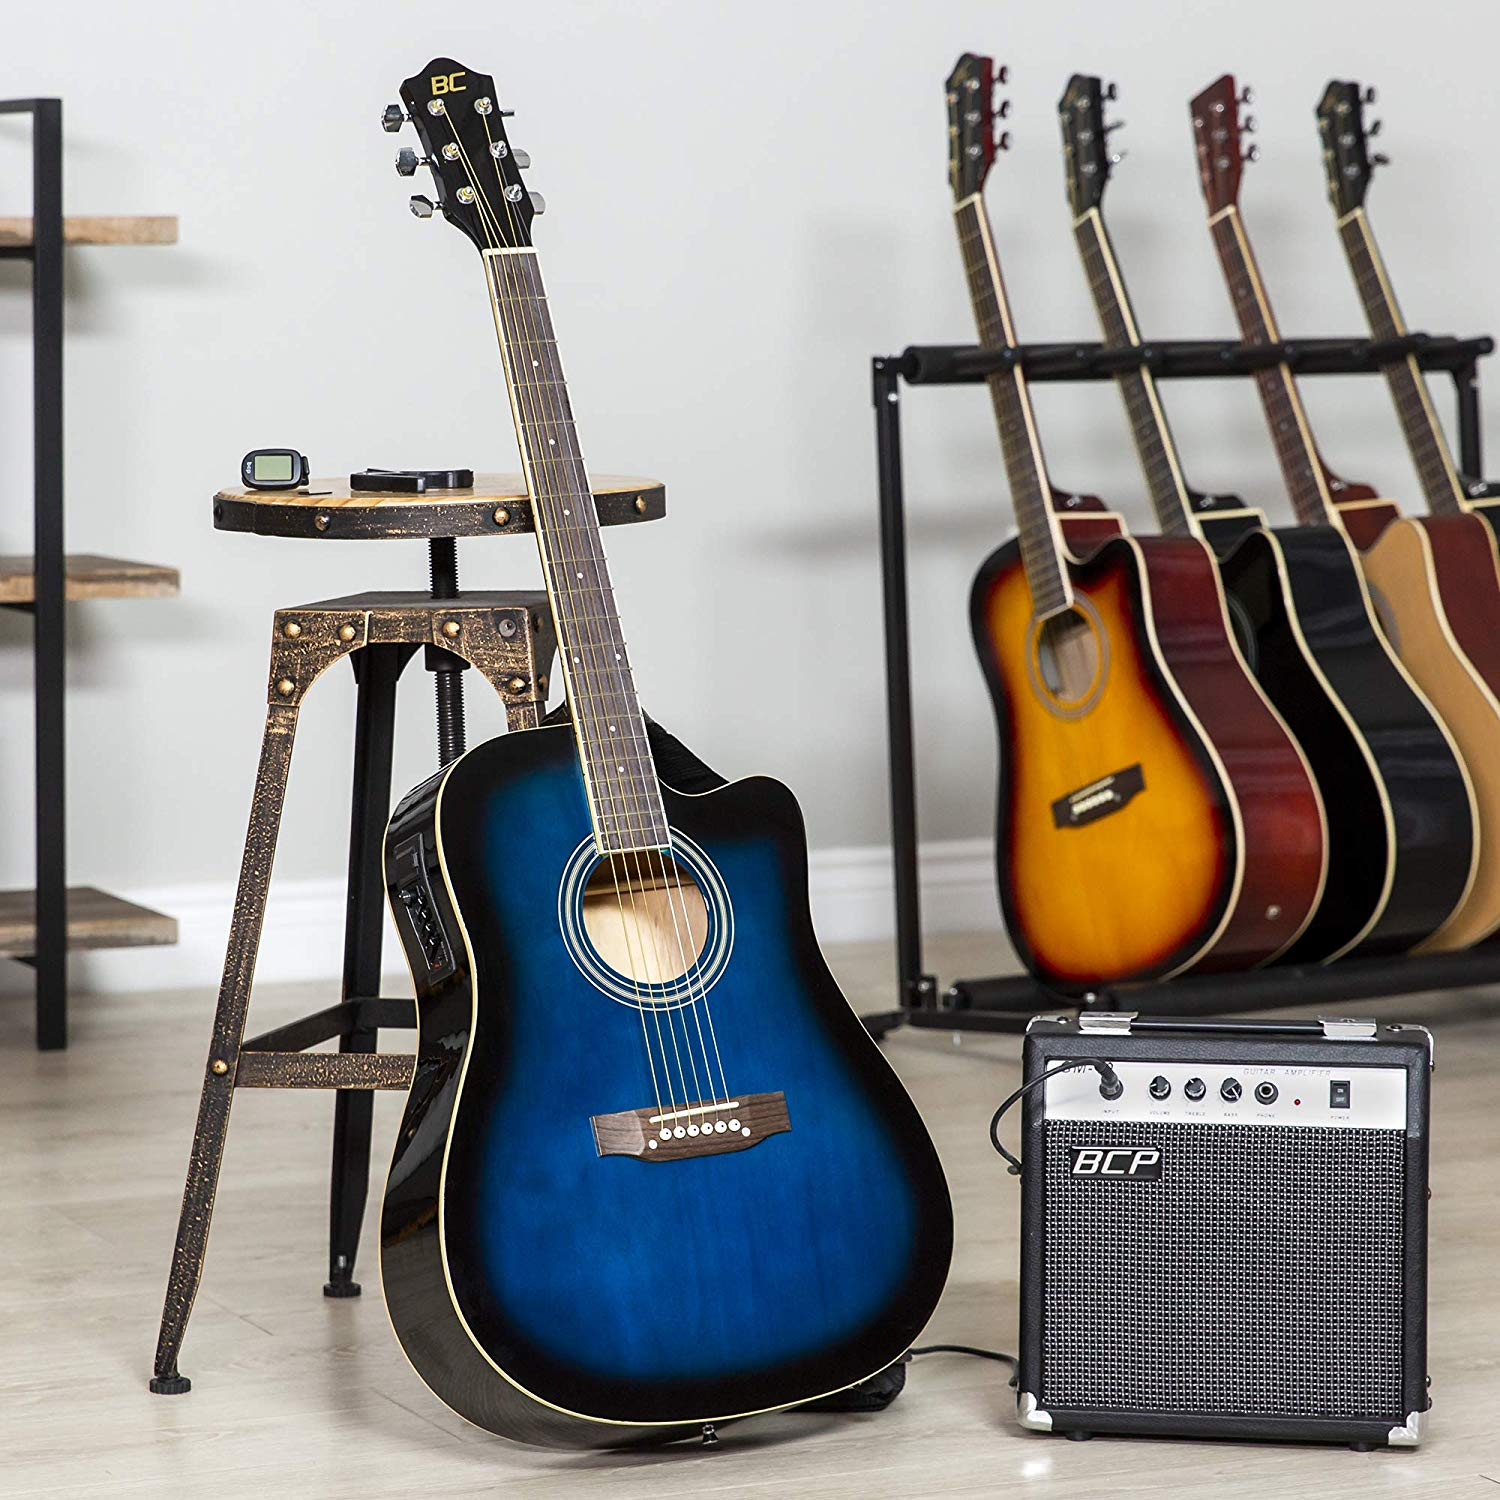 The Blue Colored BC Acoustic-Electric Guitar standing upright on display